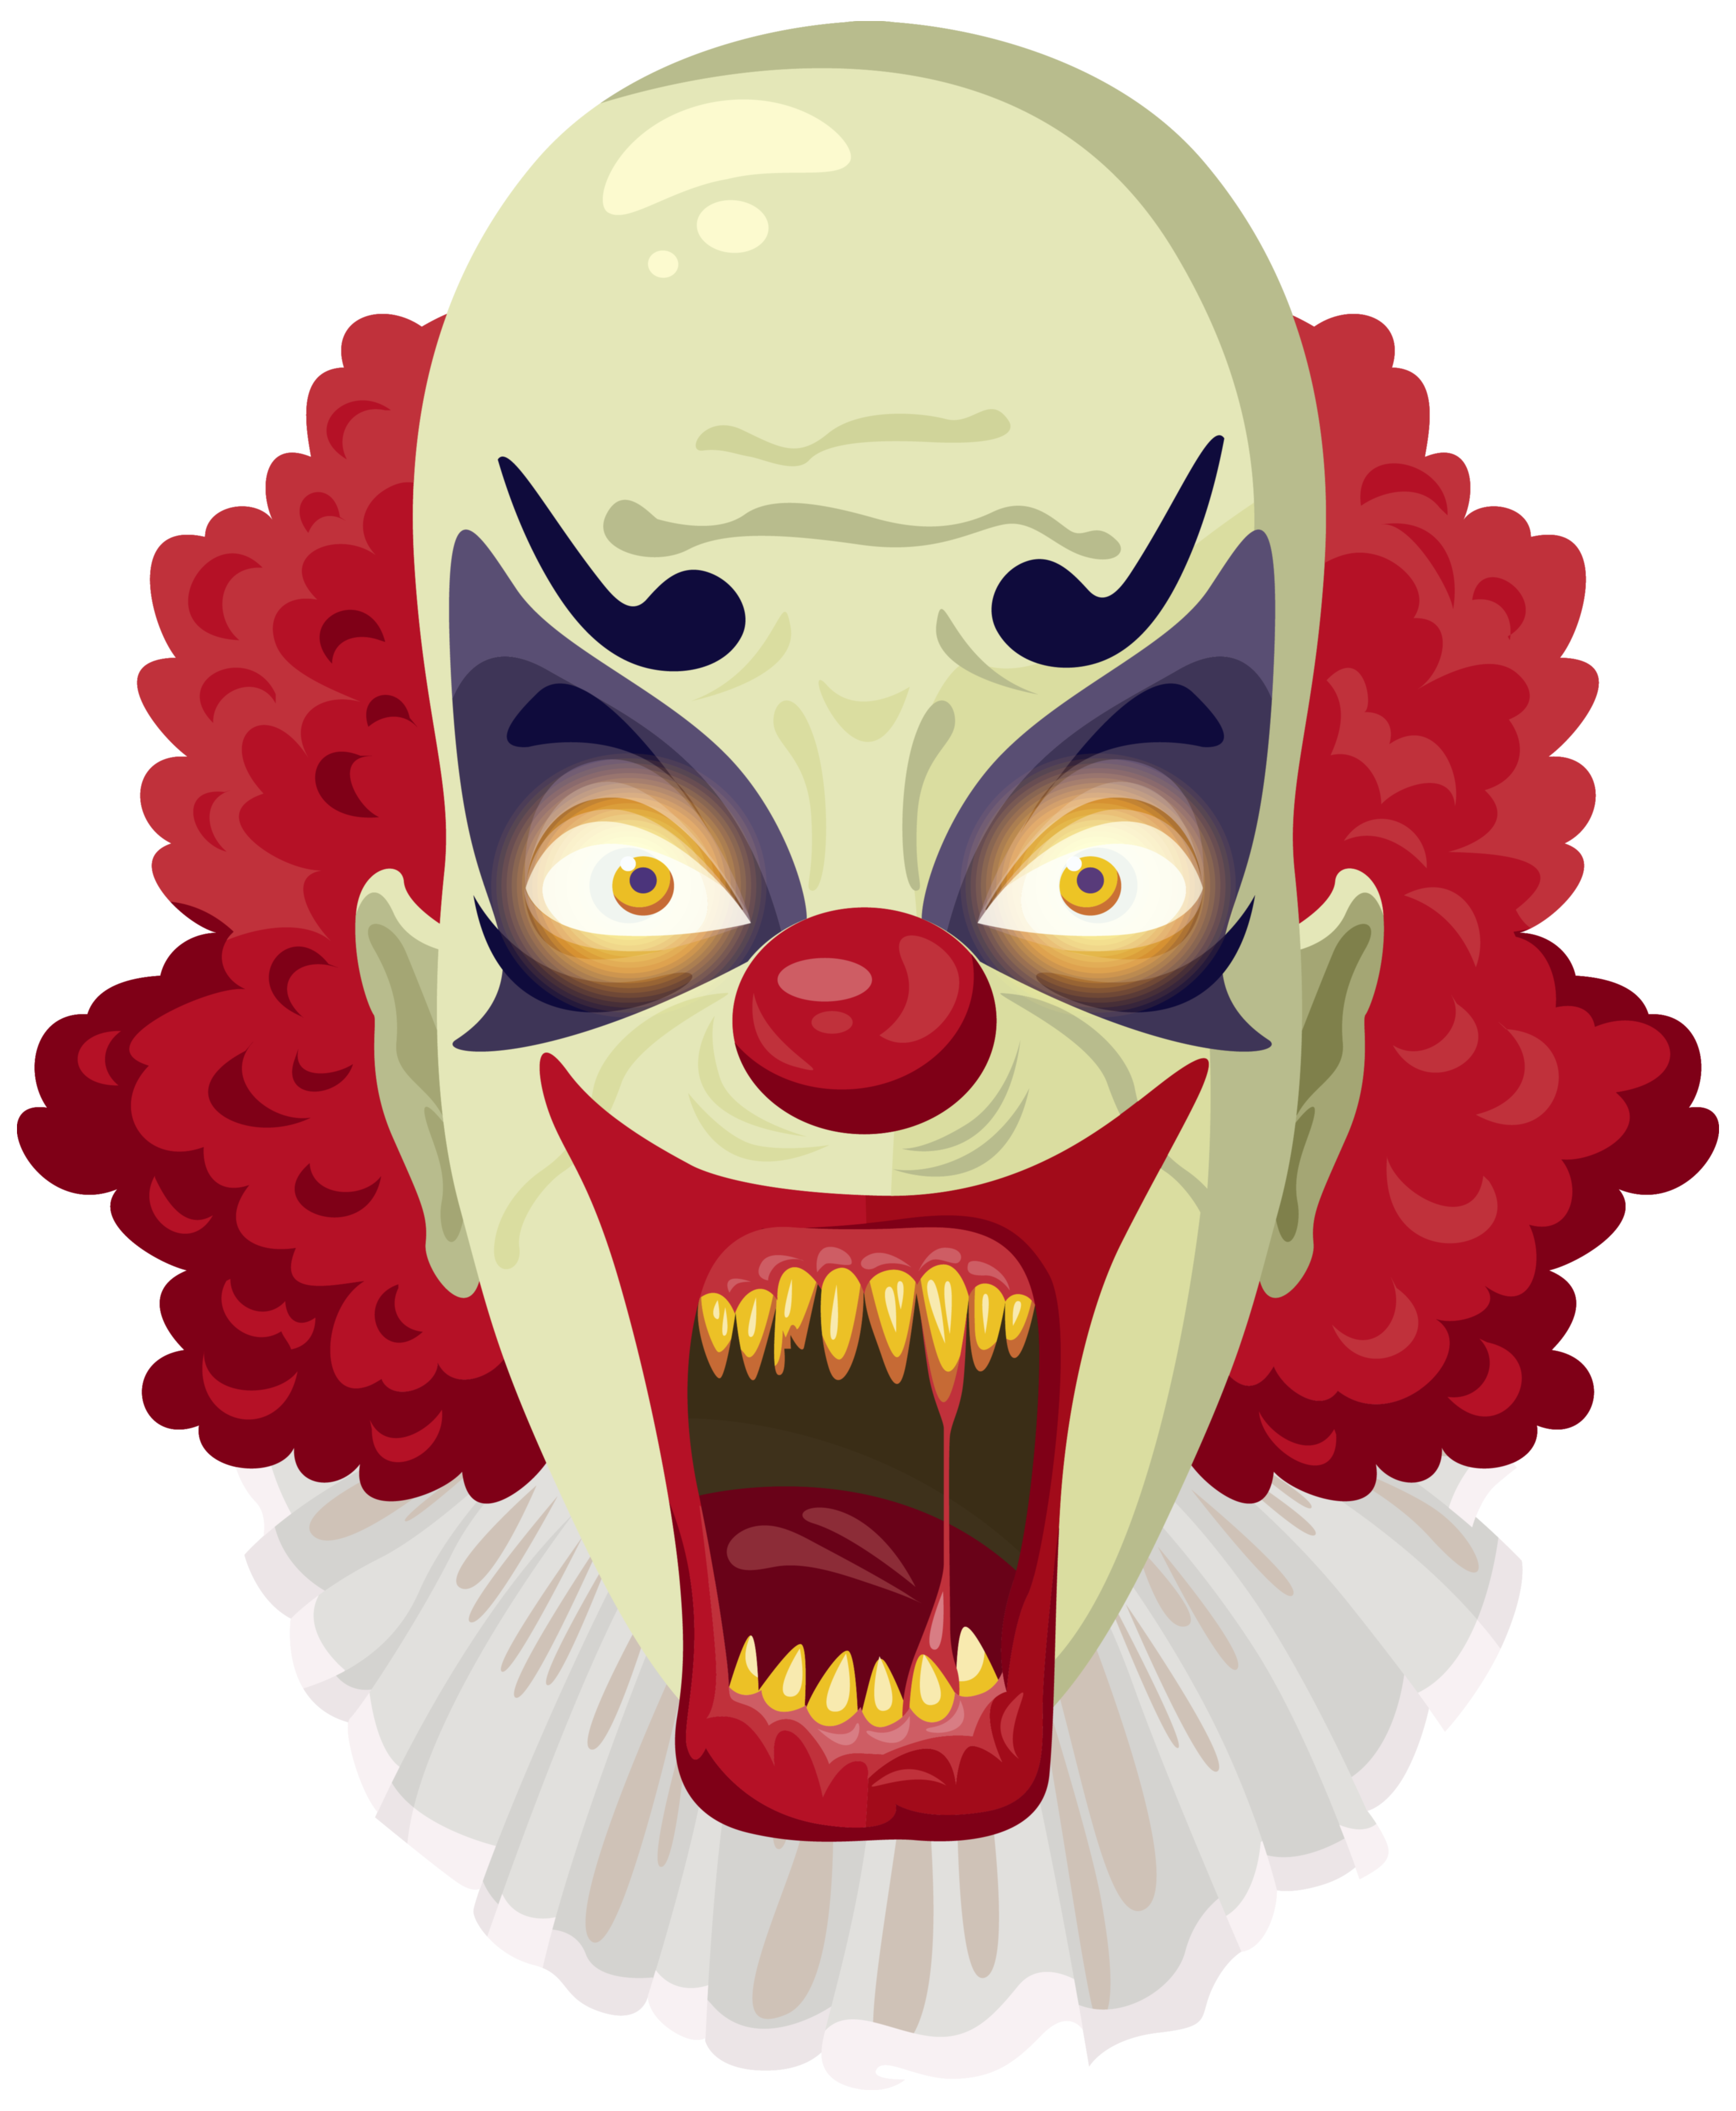 Scary png image gallery. Clown clipart clown face